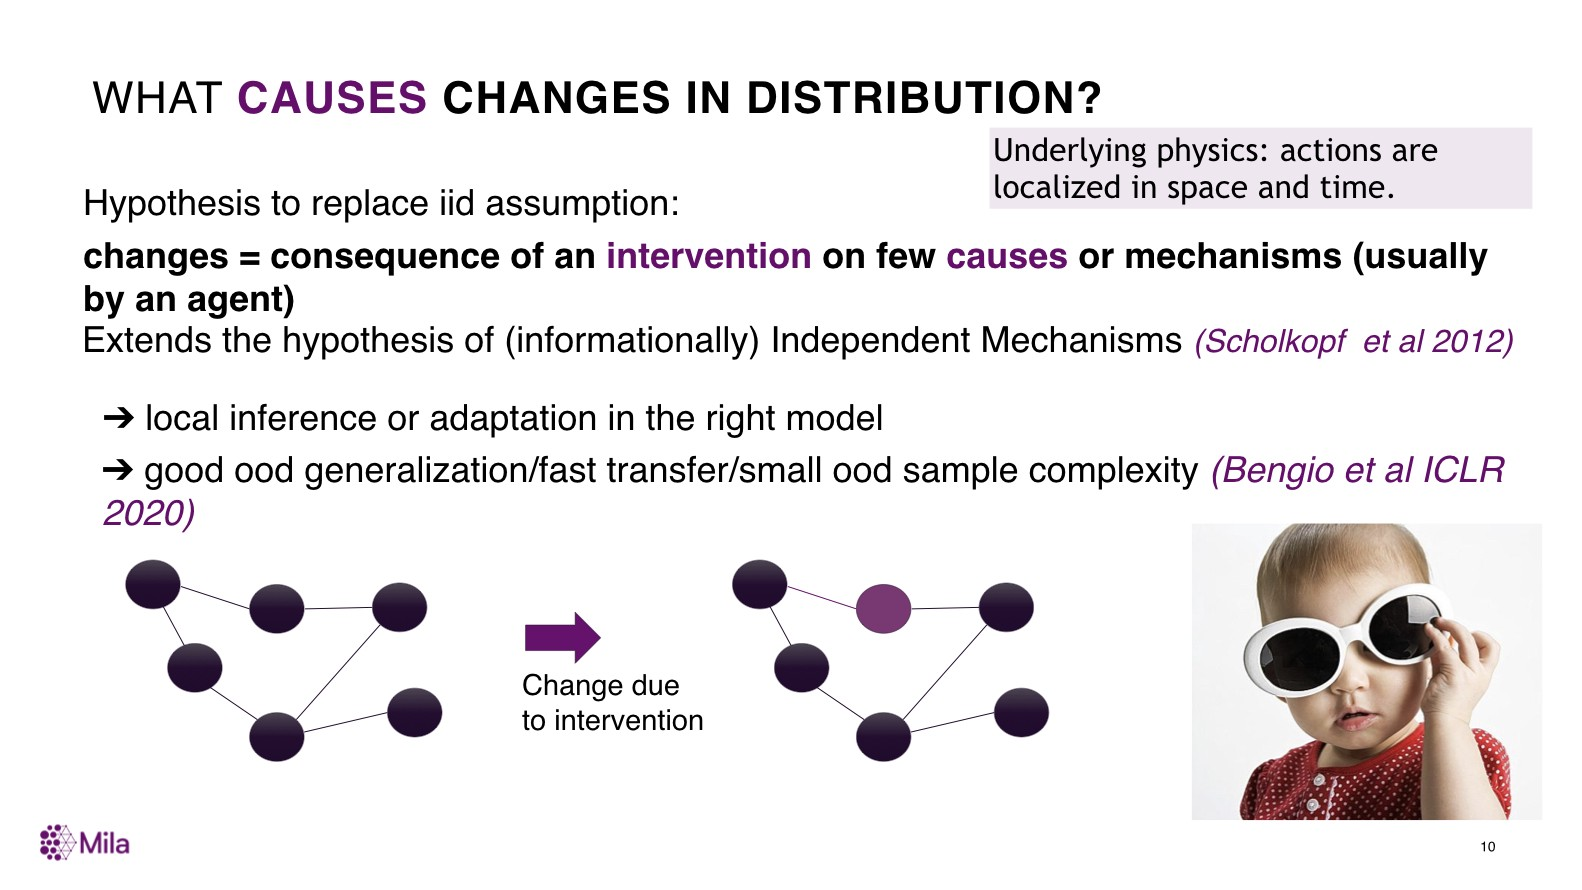 What causes changes in distribution?